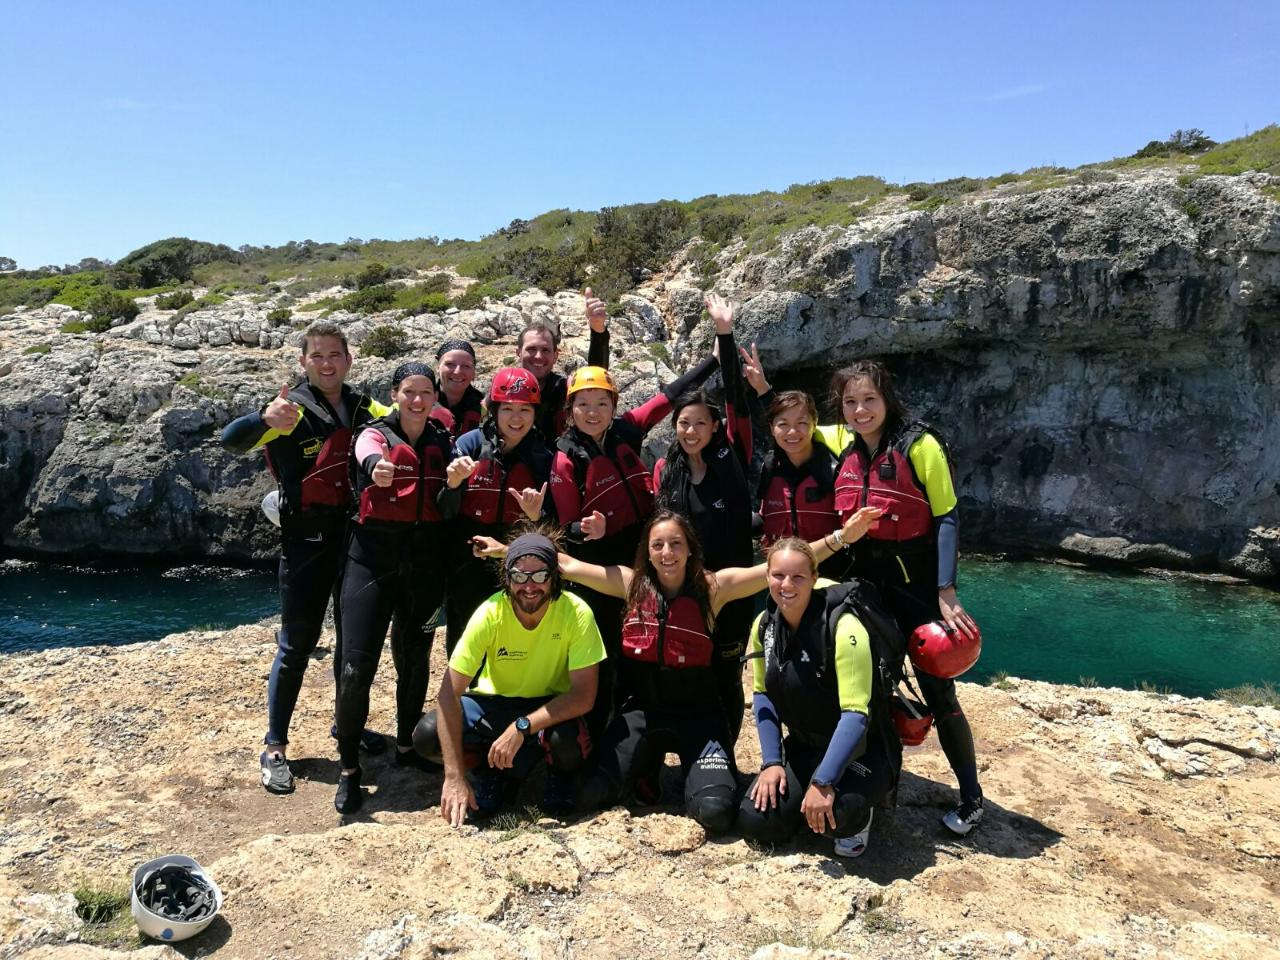 Coasteering South *AKA Cliff jumping